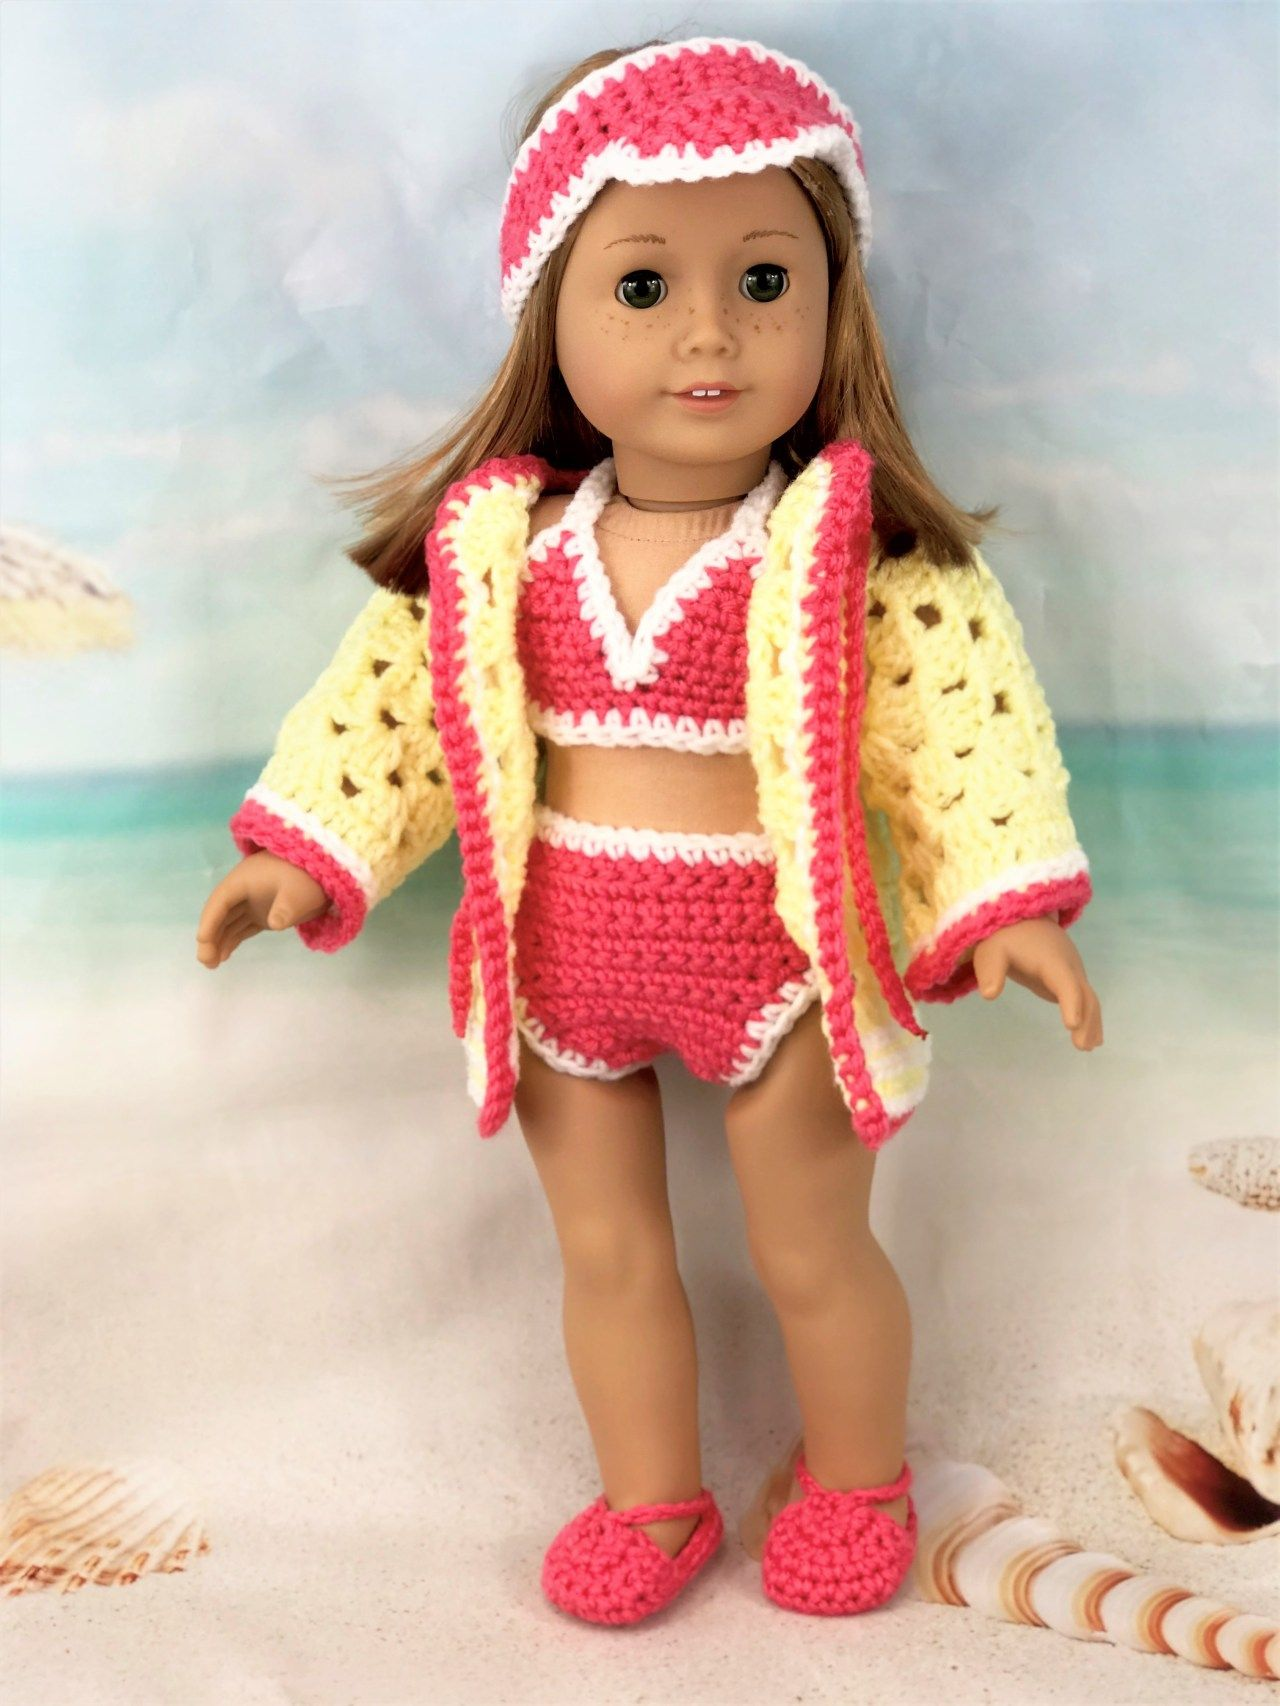 10 inch doll free crochet outfit pattern | Crochet doll clothes ... | 1706x1280